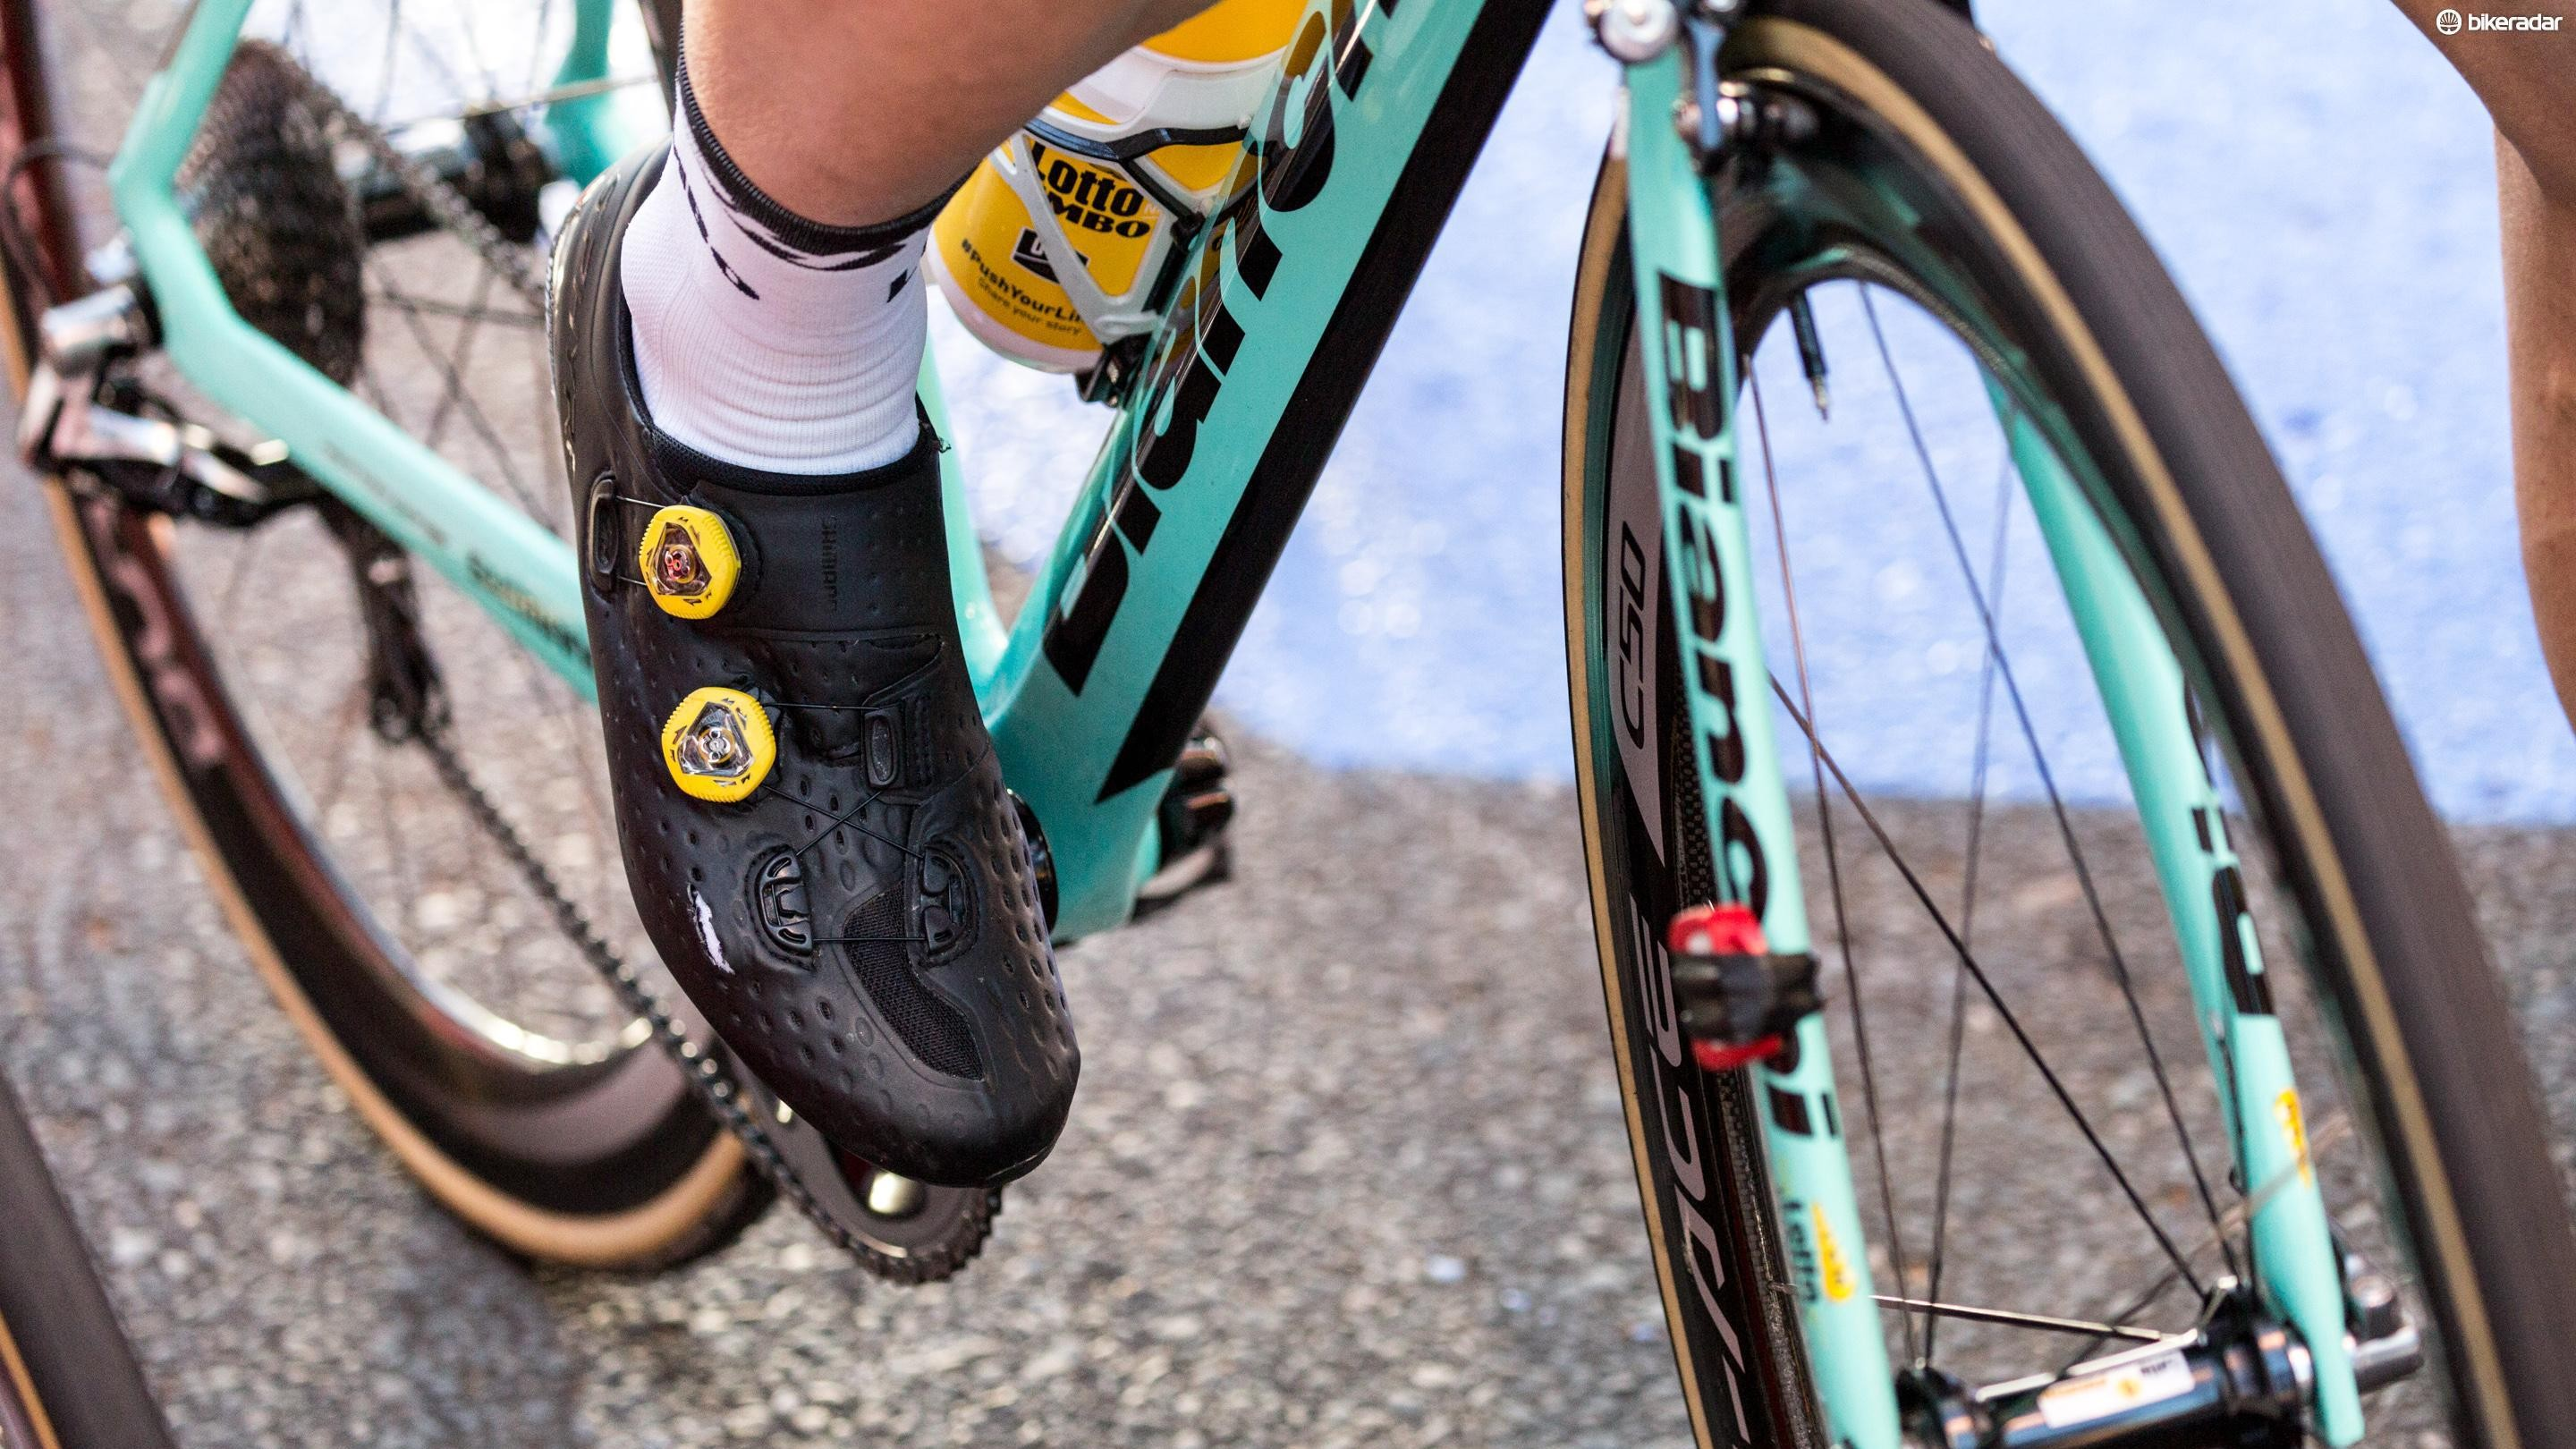 Not everybody's feet fit in the sponsor-provided shoes